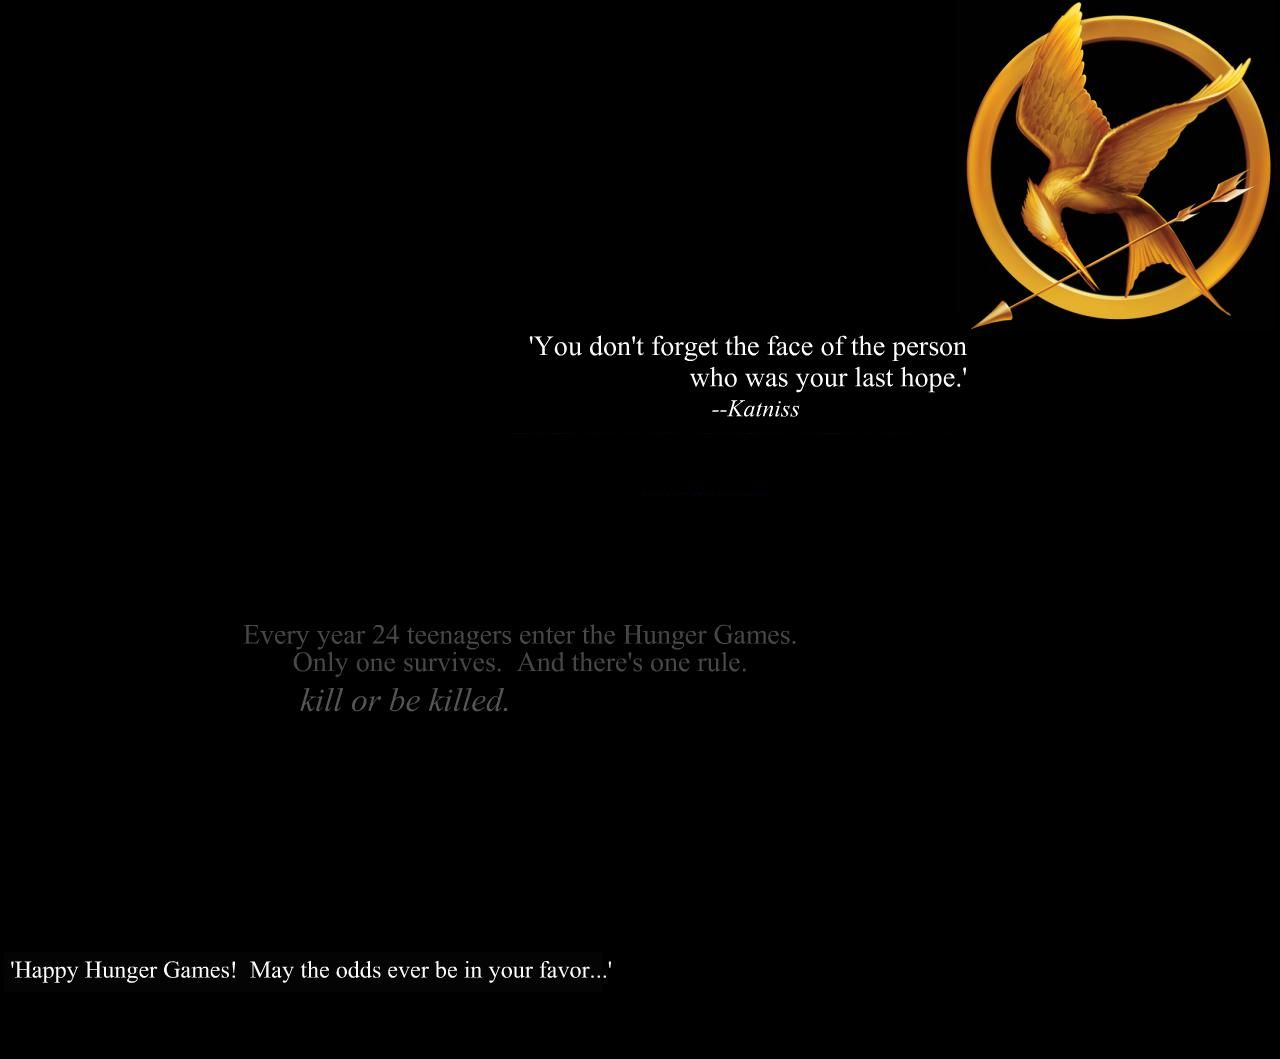 Hunger Game Quotes Hunger Games Quotes  Hgfan5602 Photo 31046052  Fanpop Fanclubs